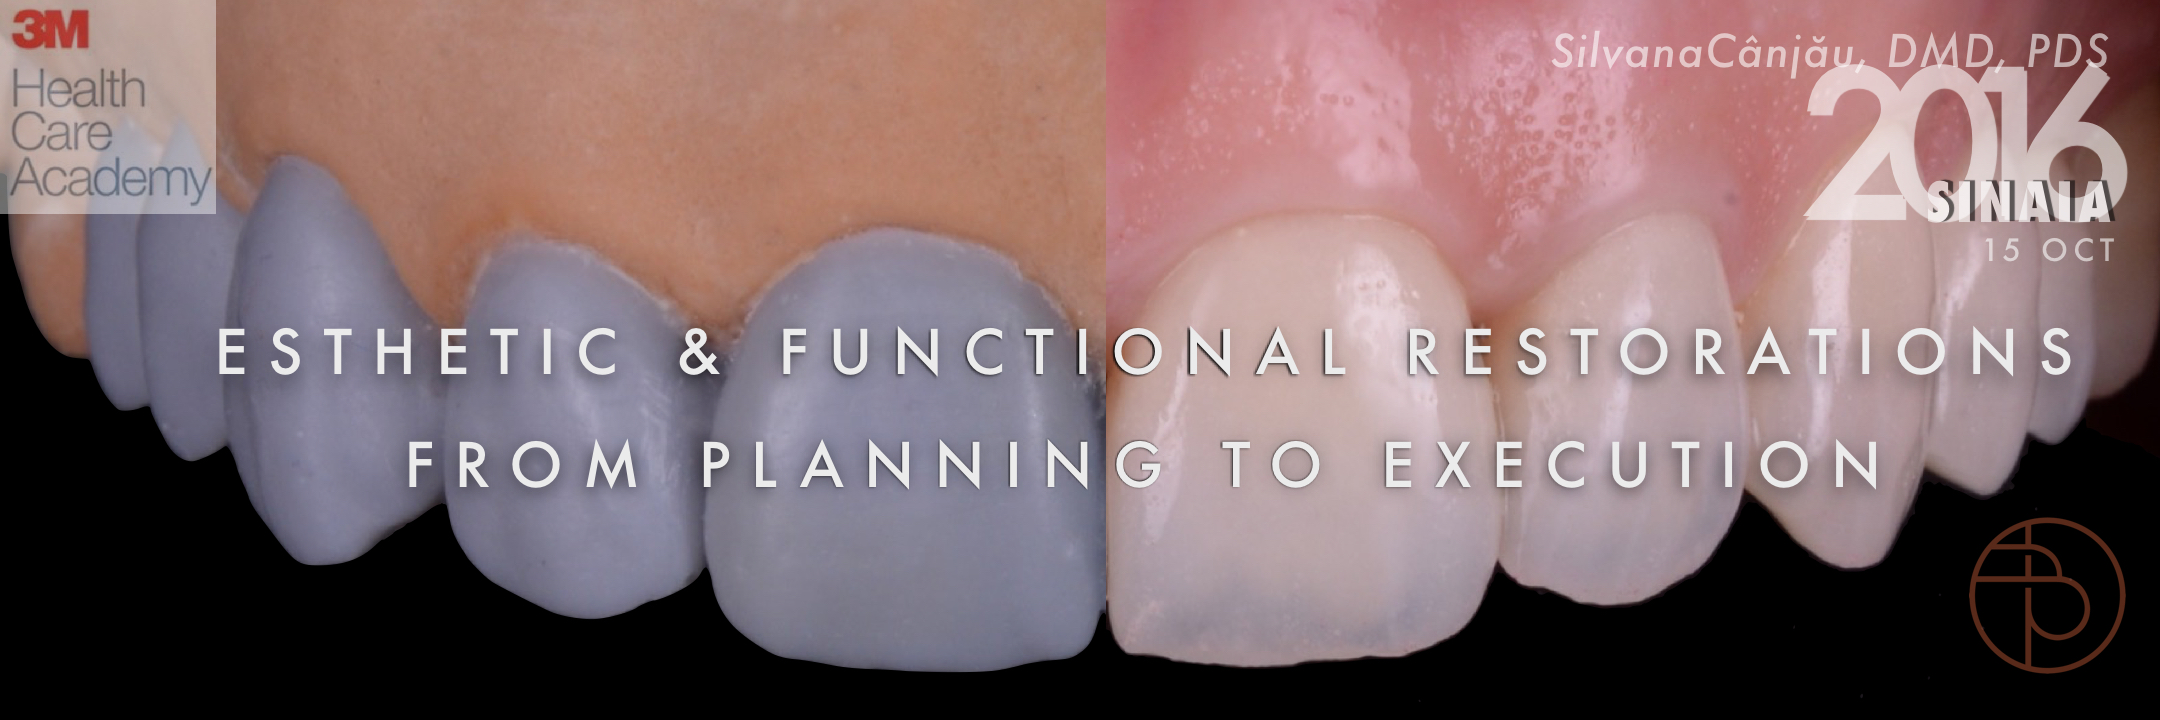 ESTHETIC & FUNCTIONAL RESTORATIONS FROM PLANNING TO EXECUTION